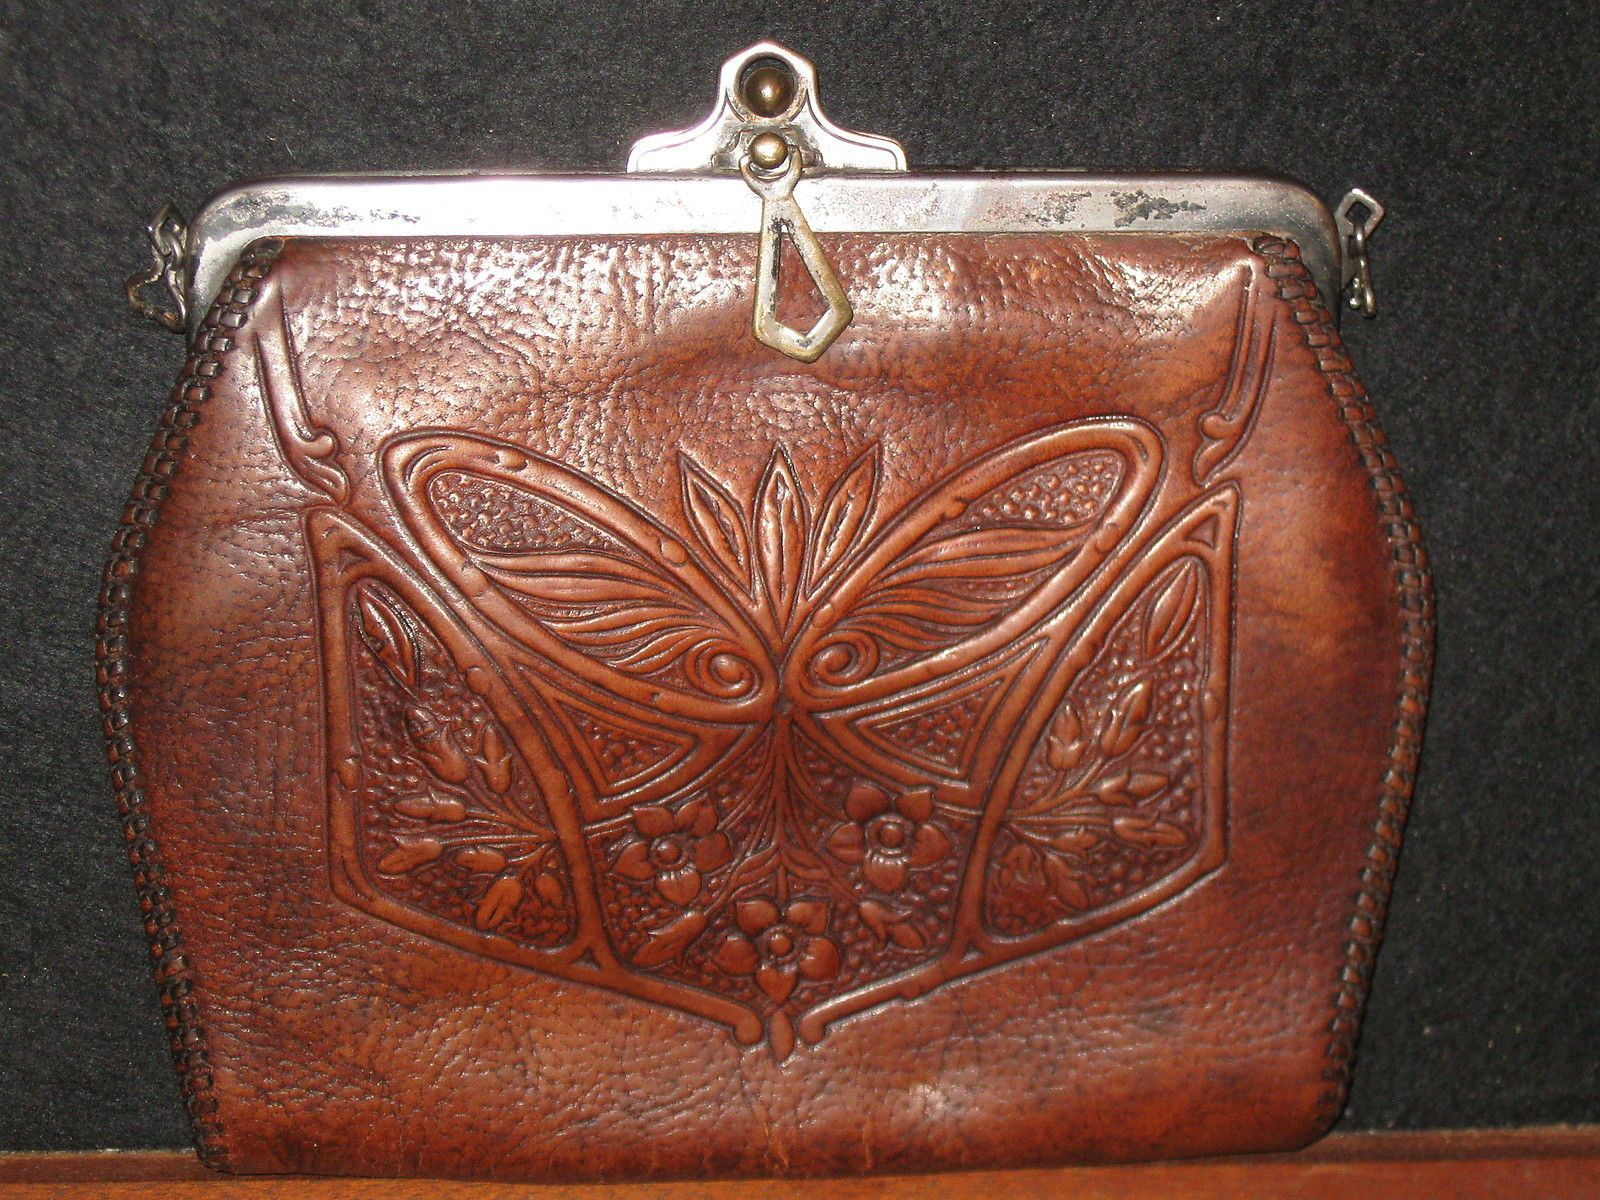 Antique Art Deco Arts Crafts Nouveau Silver Tooled Leather Clutch Purse | eBay